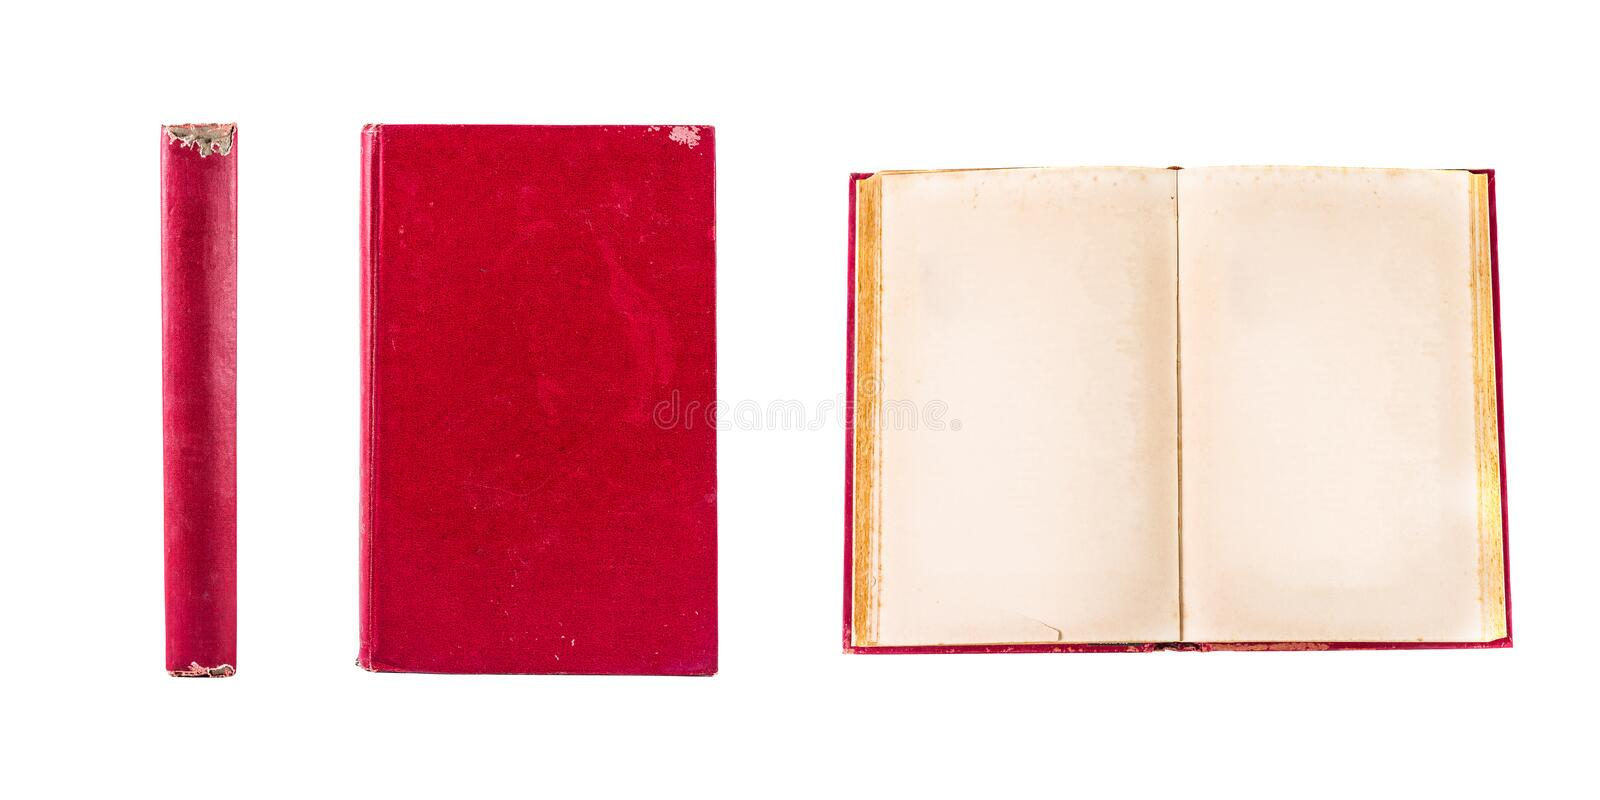 Old book isolated royalty free stock photo